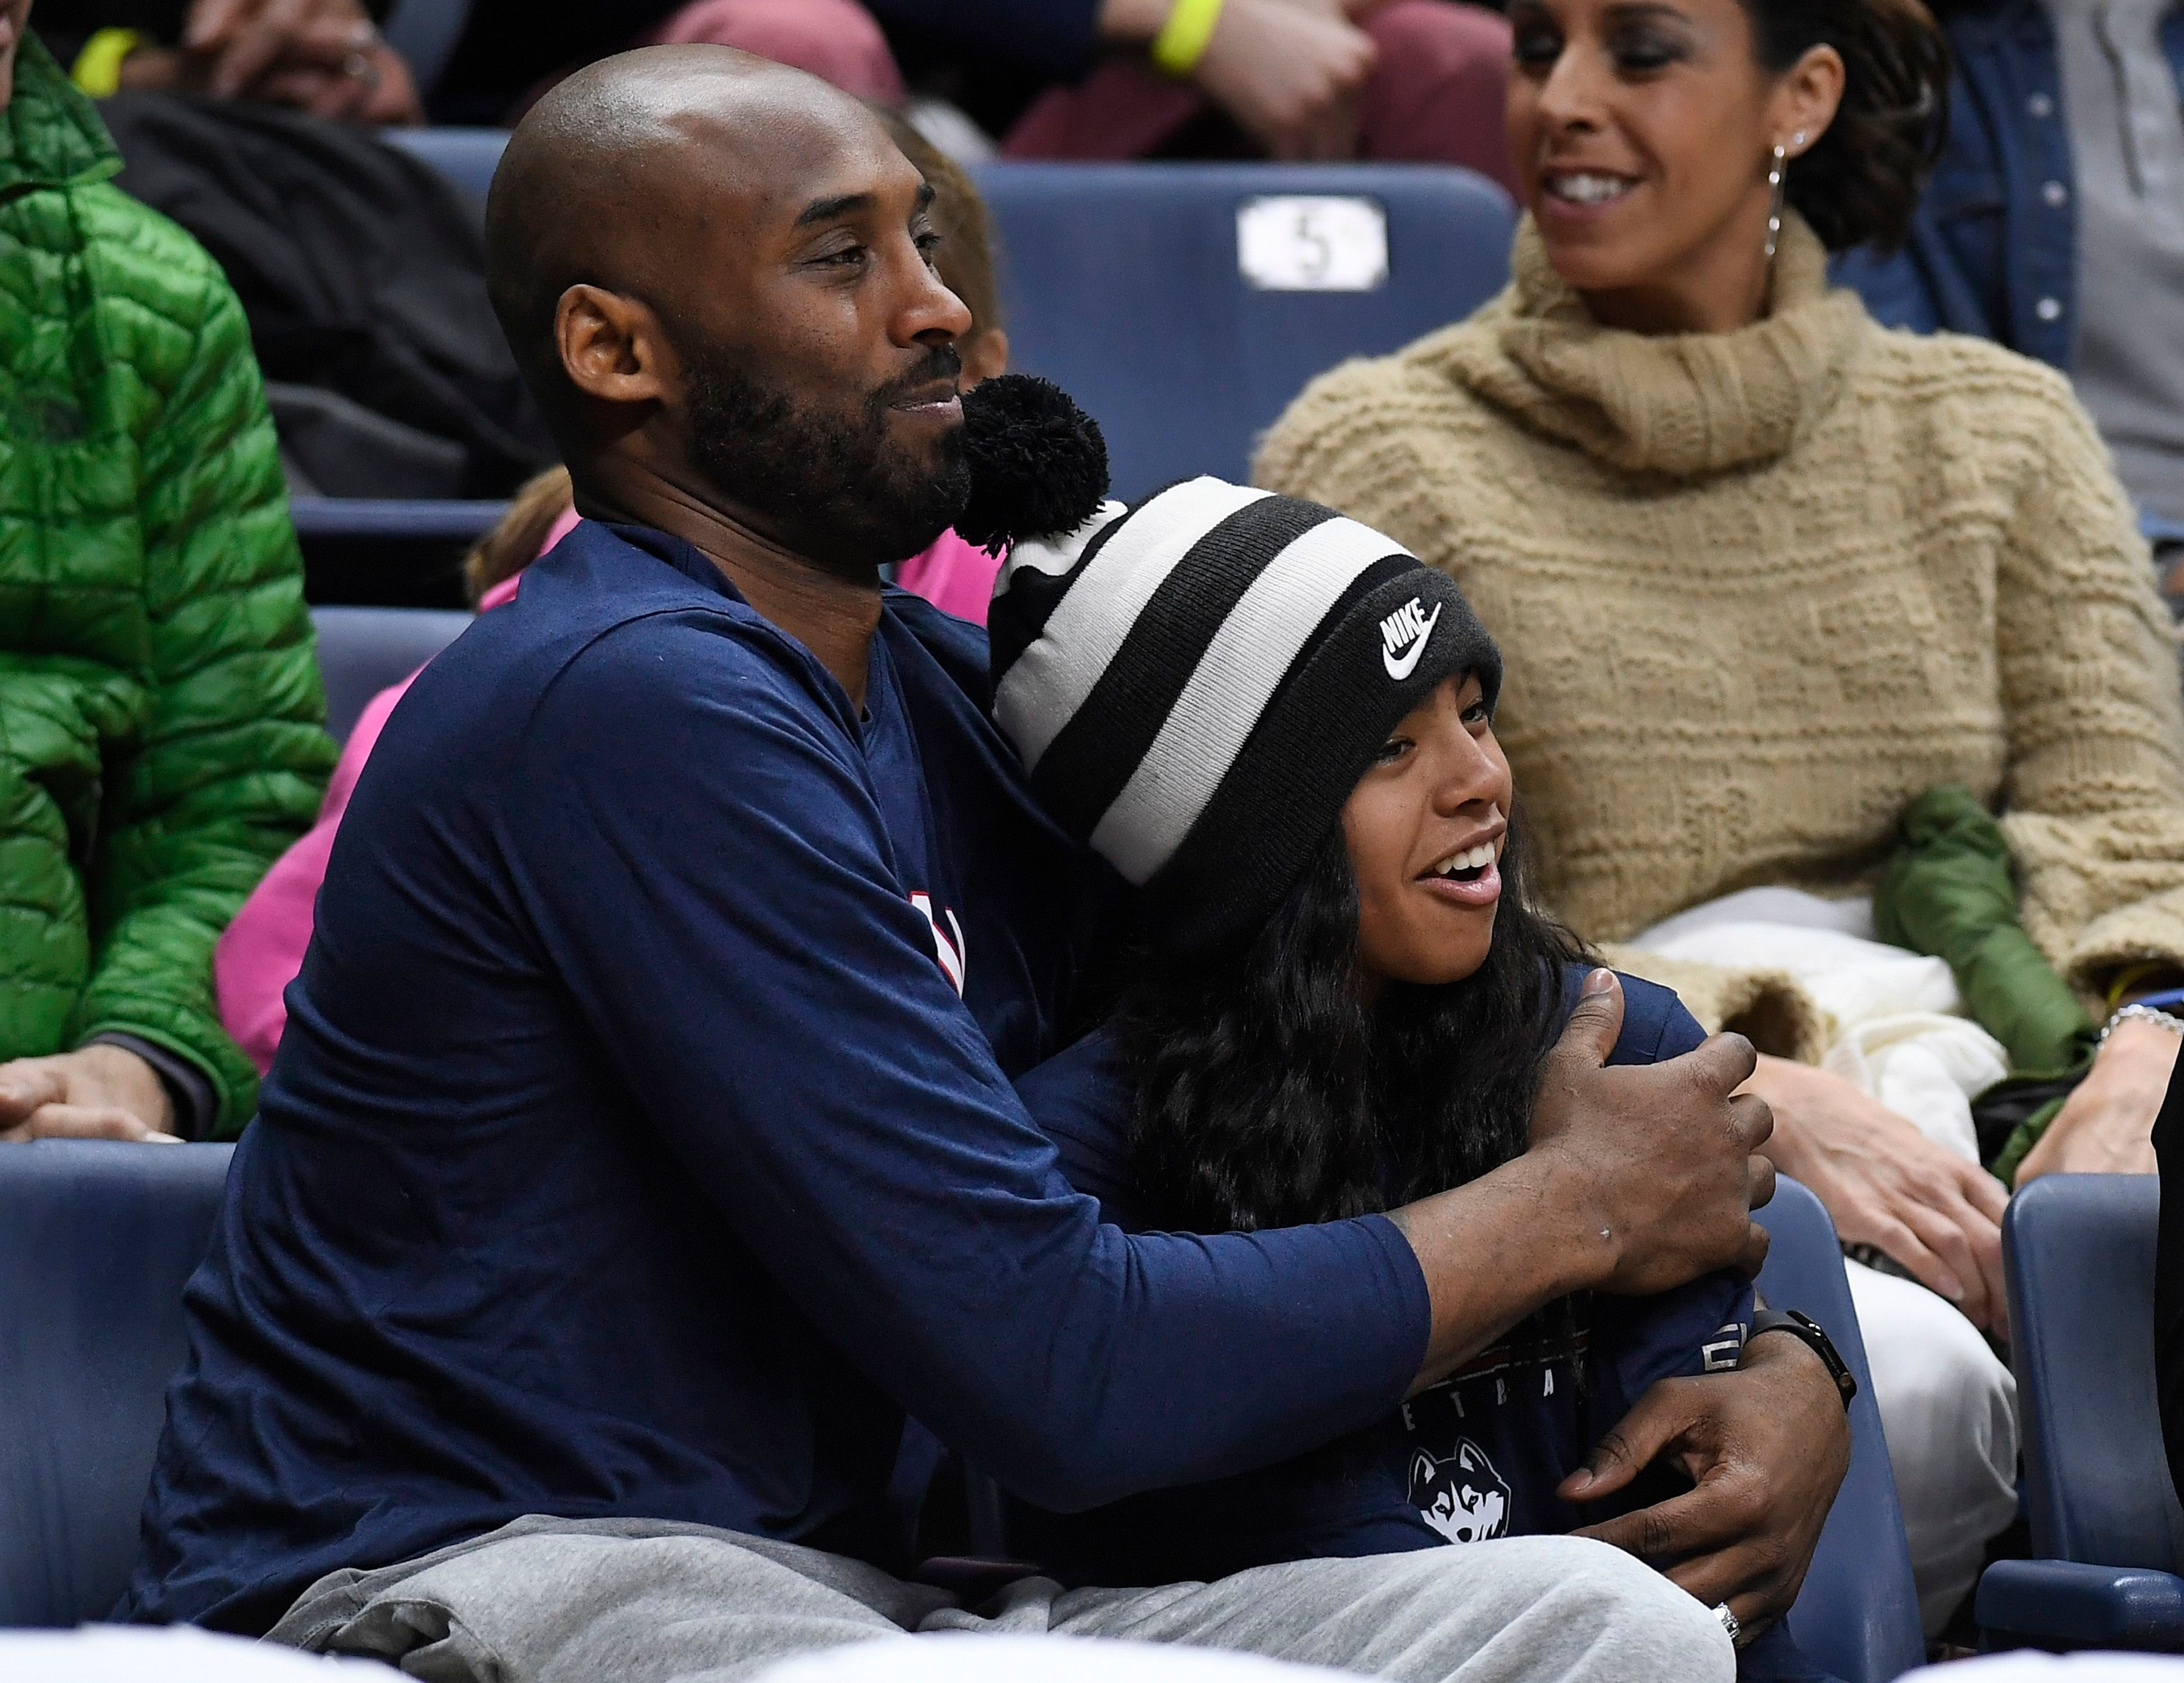 Kobe Bryant and his daughter Gianna Bryant watch the first half of an NCAA college basketball game between Connecticut and Houston, in Storrs, ConnHouston UConn Basketball, Storrs, USA - 02 Mar 2019